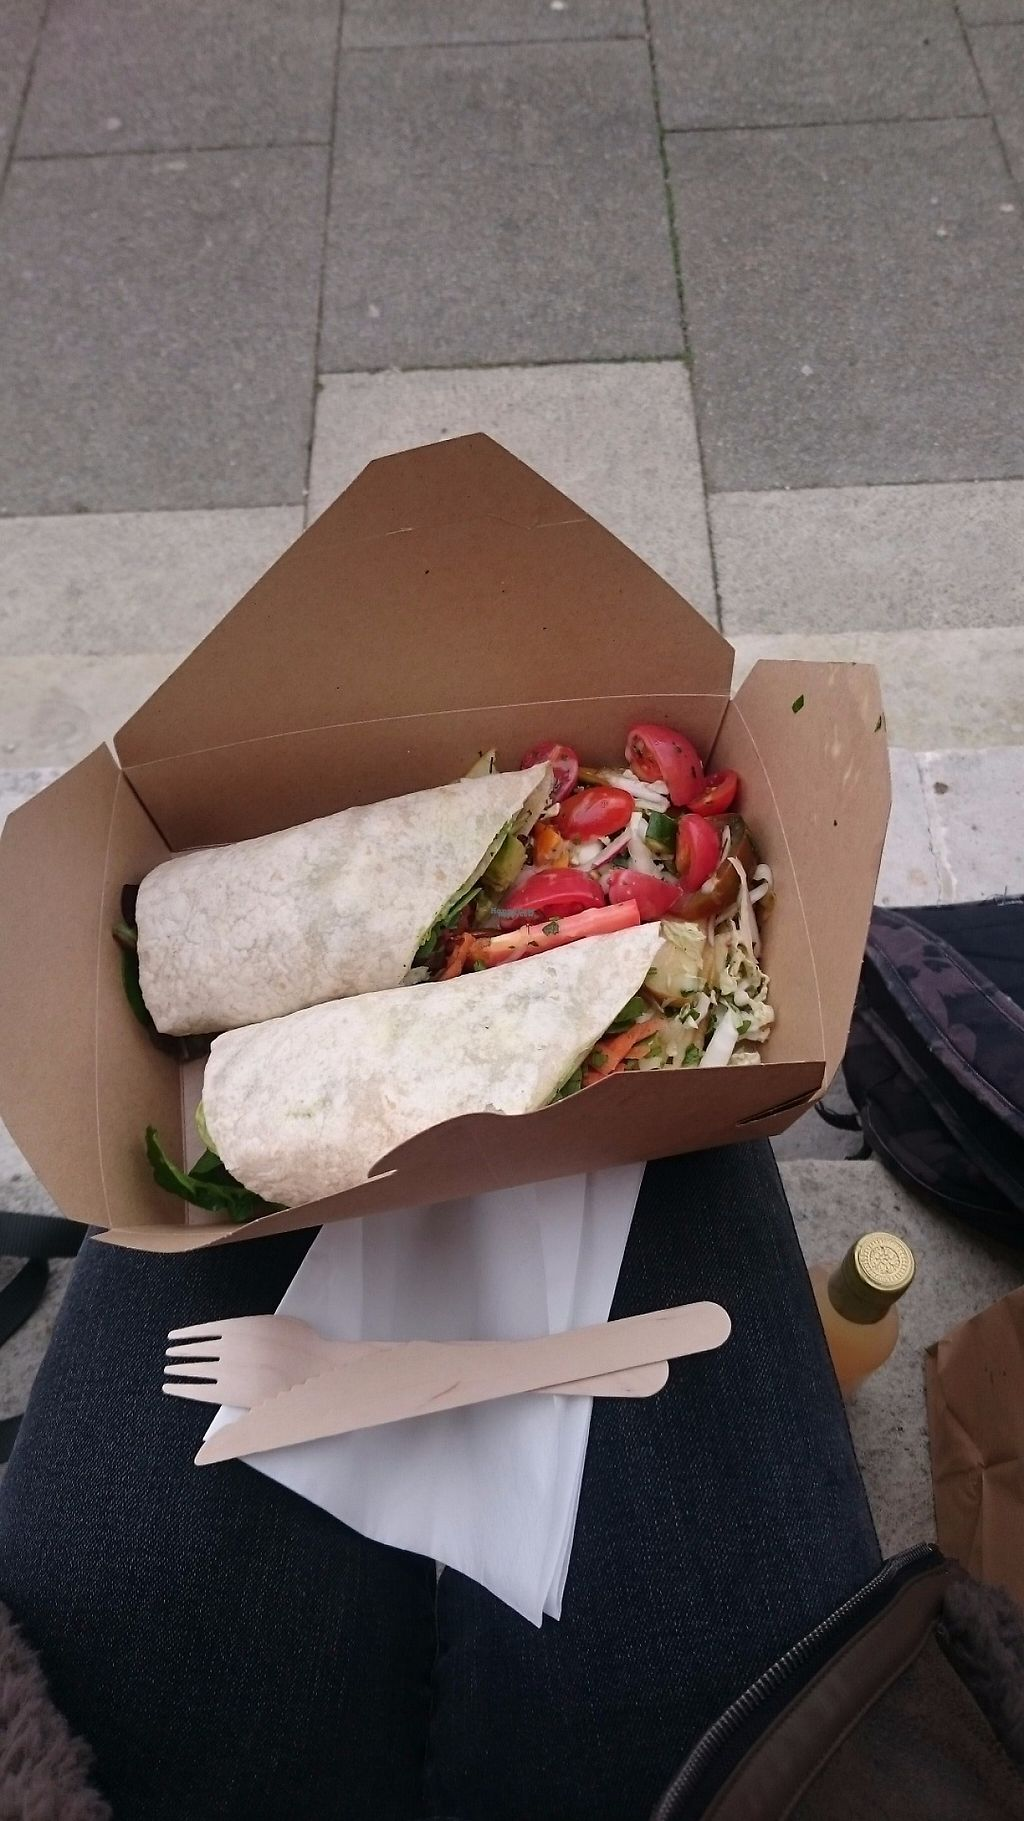 """Photo of The Wallflower Cafe  by <a href=""""/members/profile/lilyanja"""">lilyanja</a> <br/>Avocado and sweet potato wrap with cashew pesto <br/> March 4, 2017  - <a href='/contact/abuse/image/63719/232576'>Report</a>"""